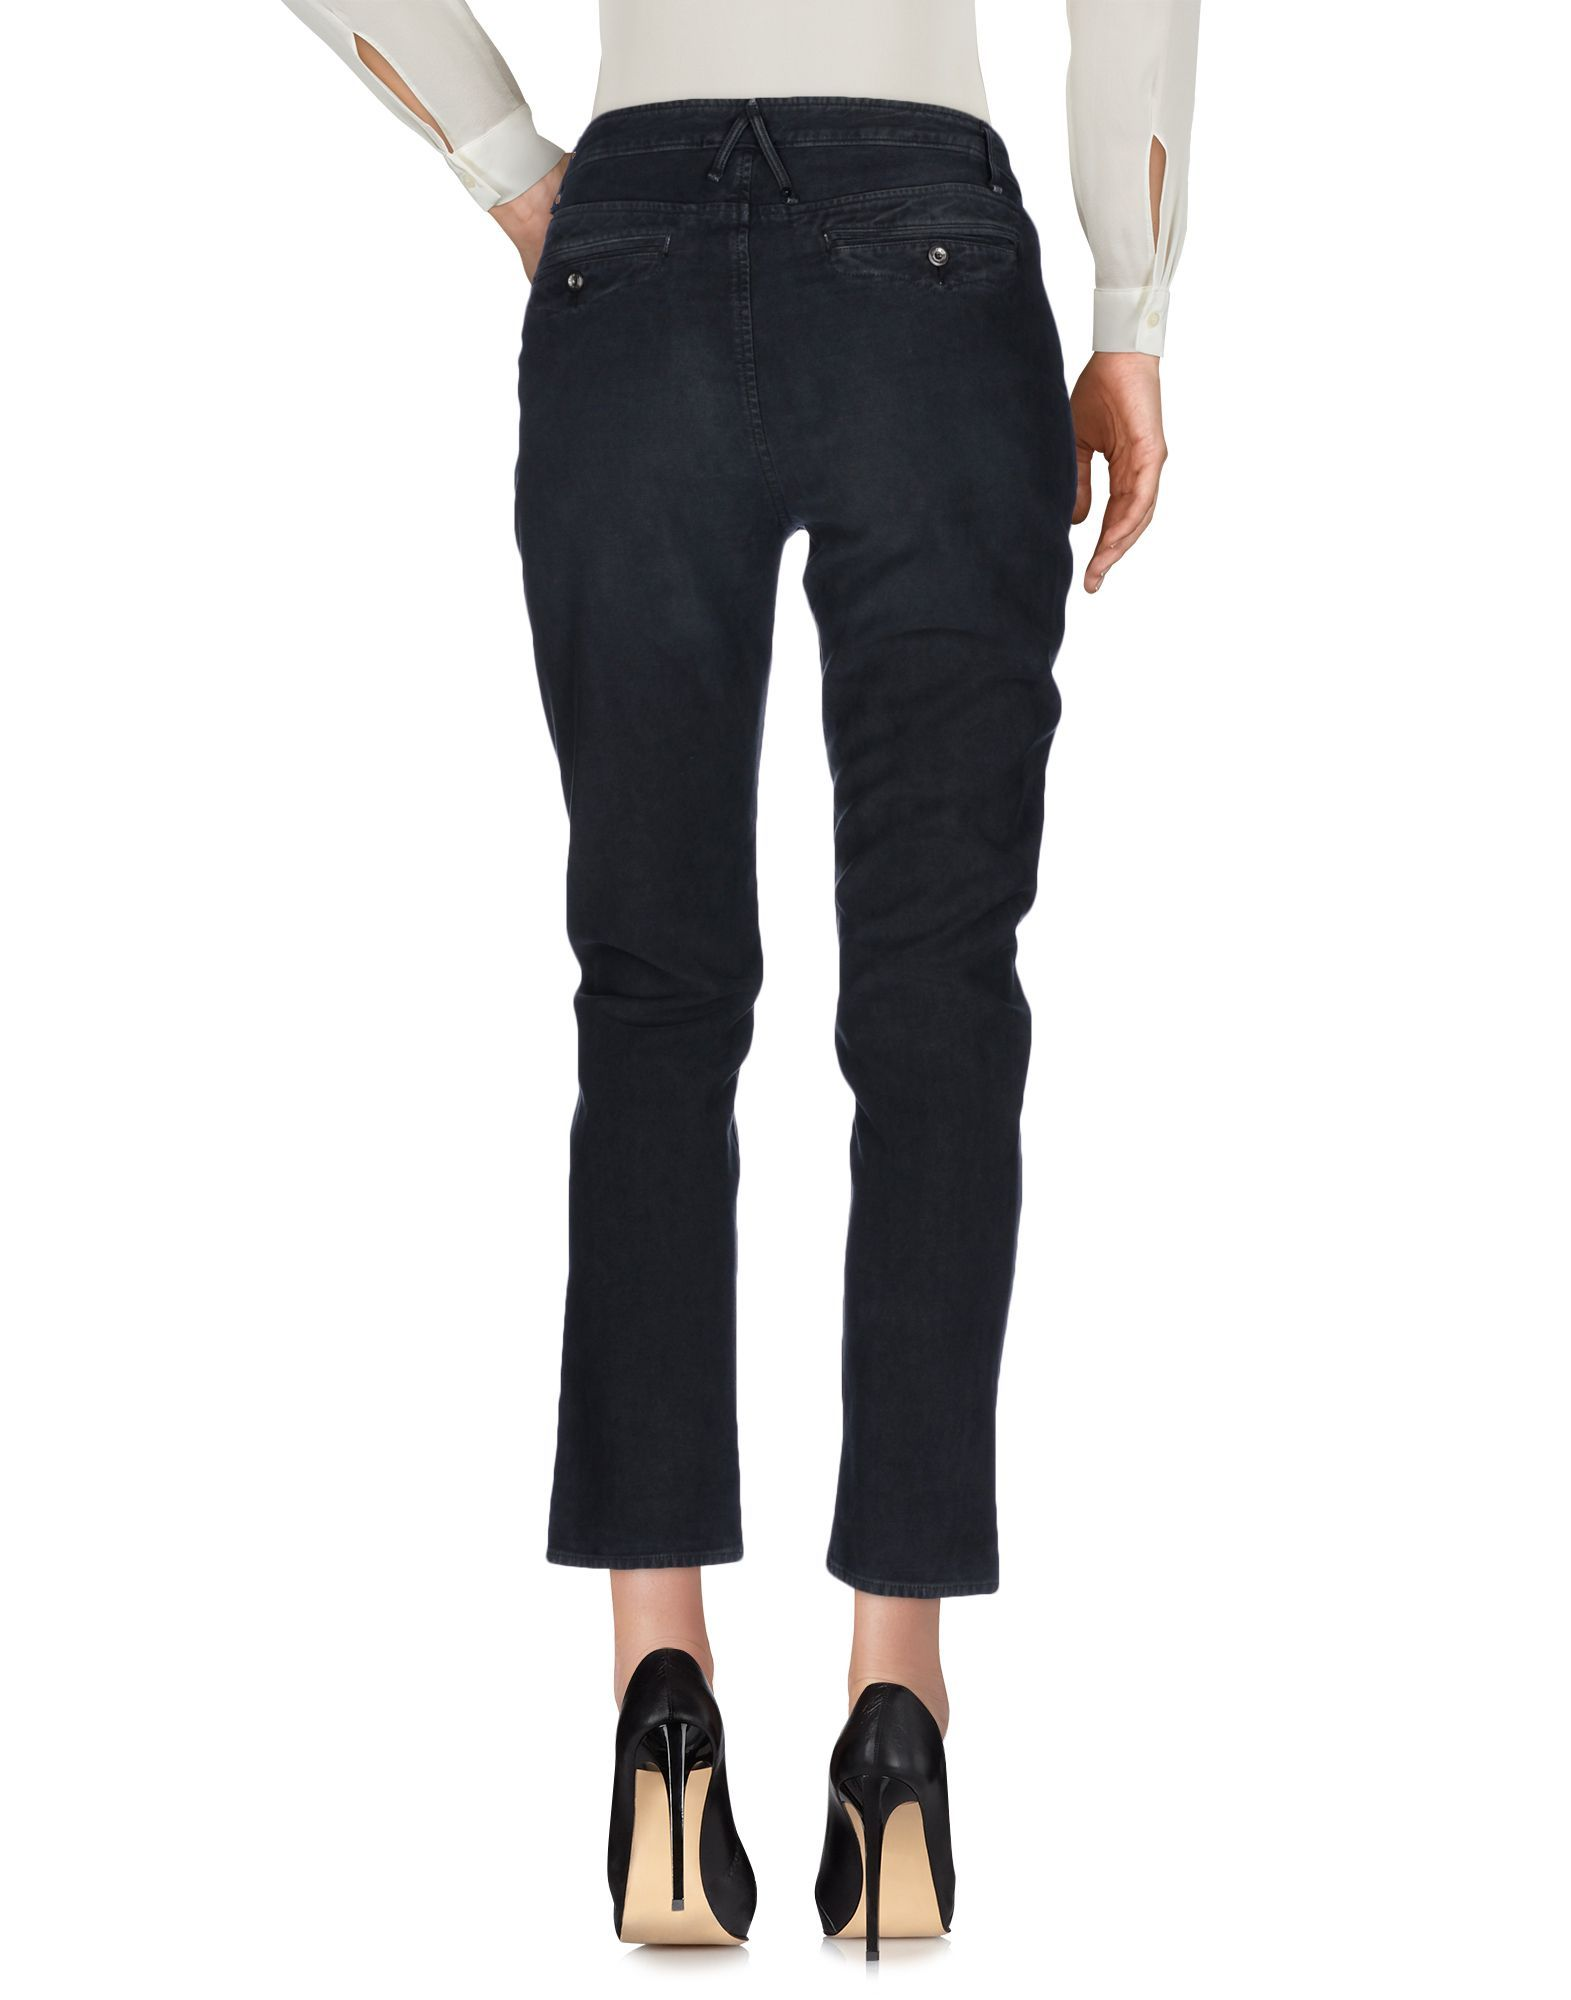 TROUSERS Cycle Lead Woman Cotton